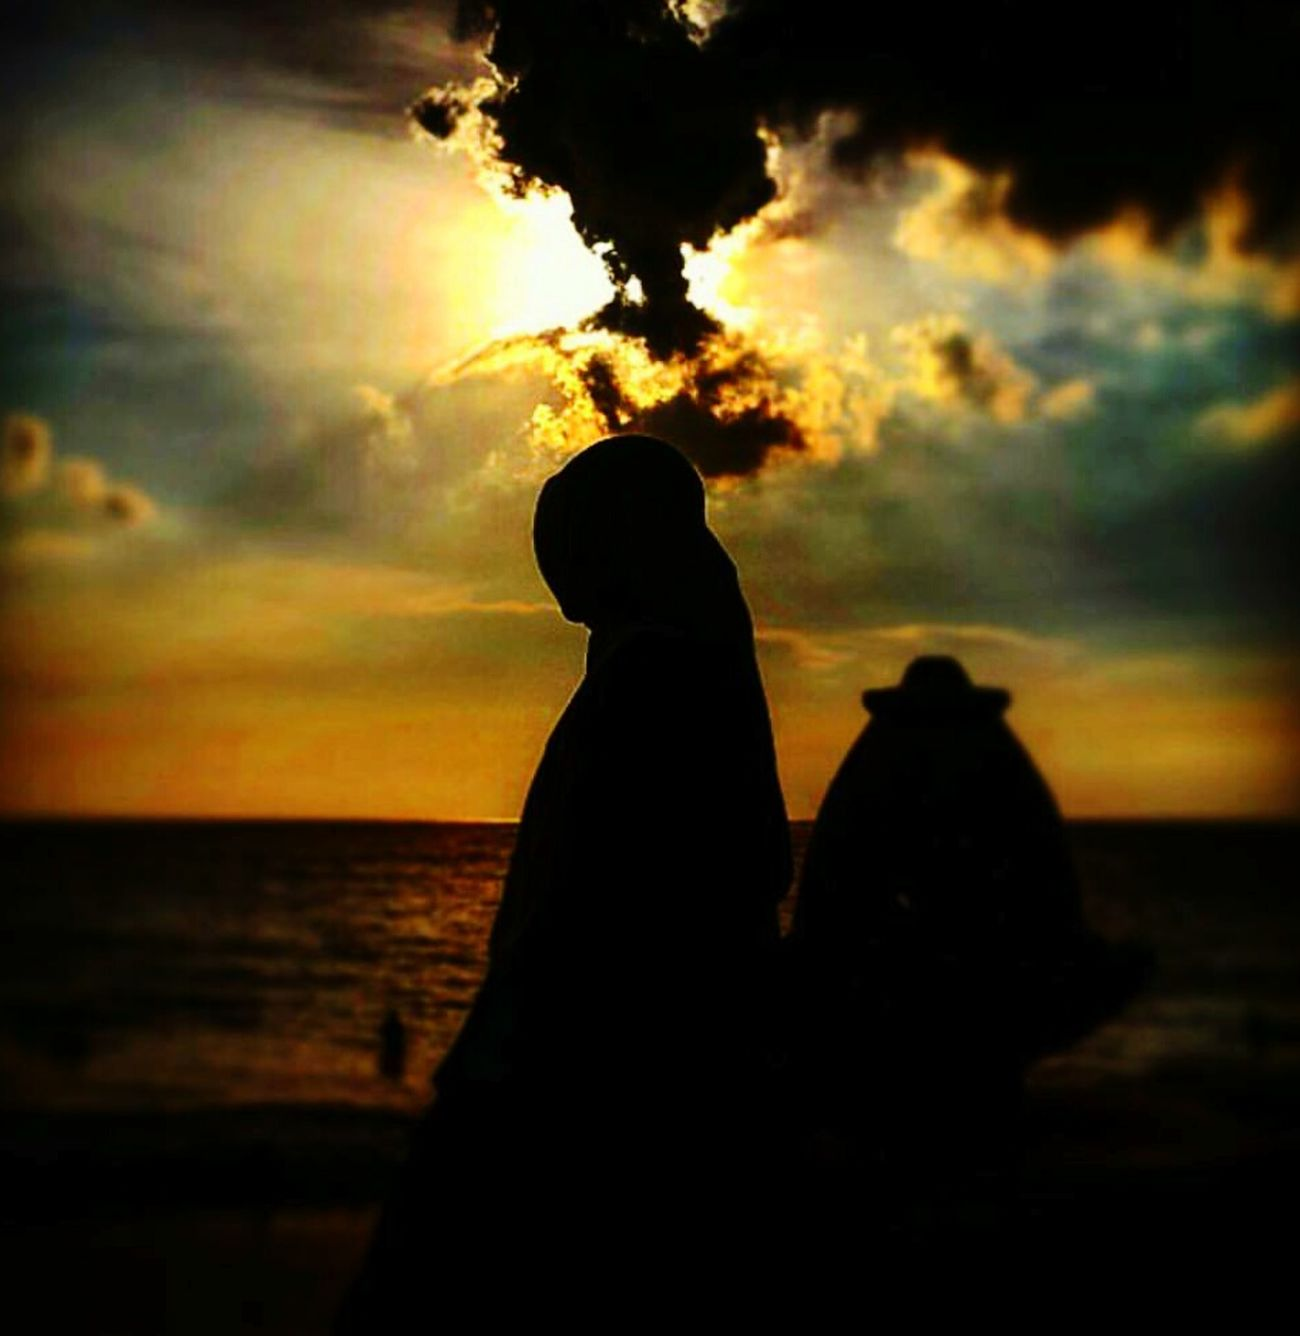 Sunset Silhouettes Beach Time Anyerbeach MarbellaHotel FLS2N